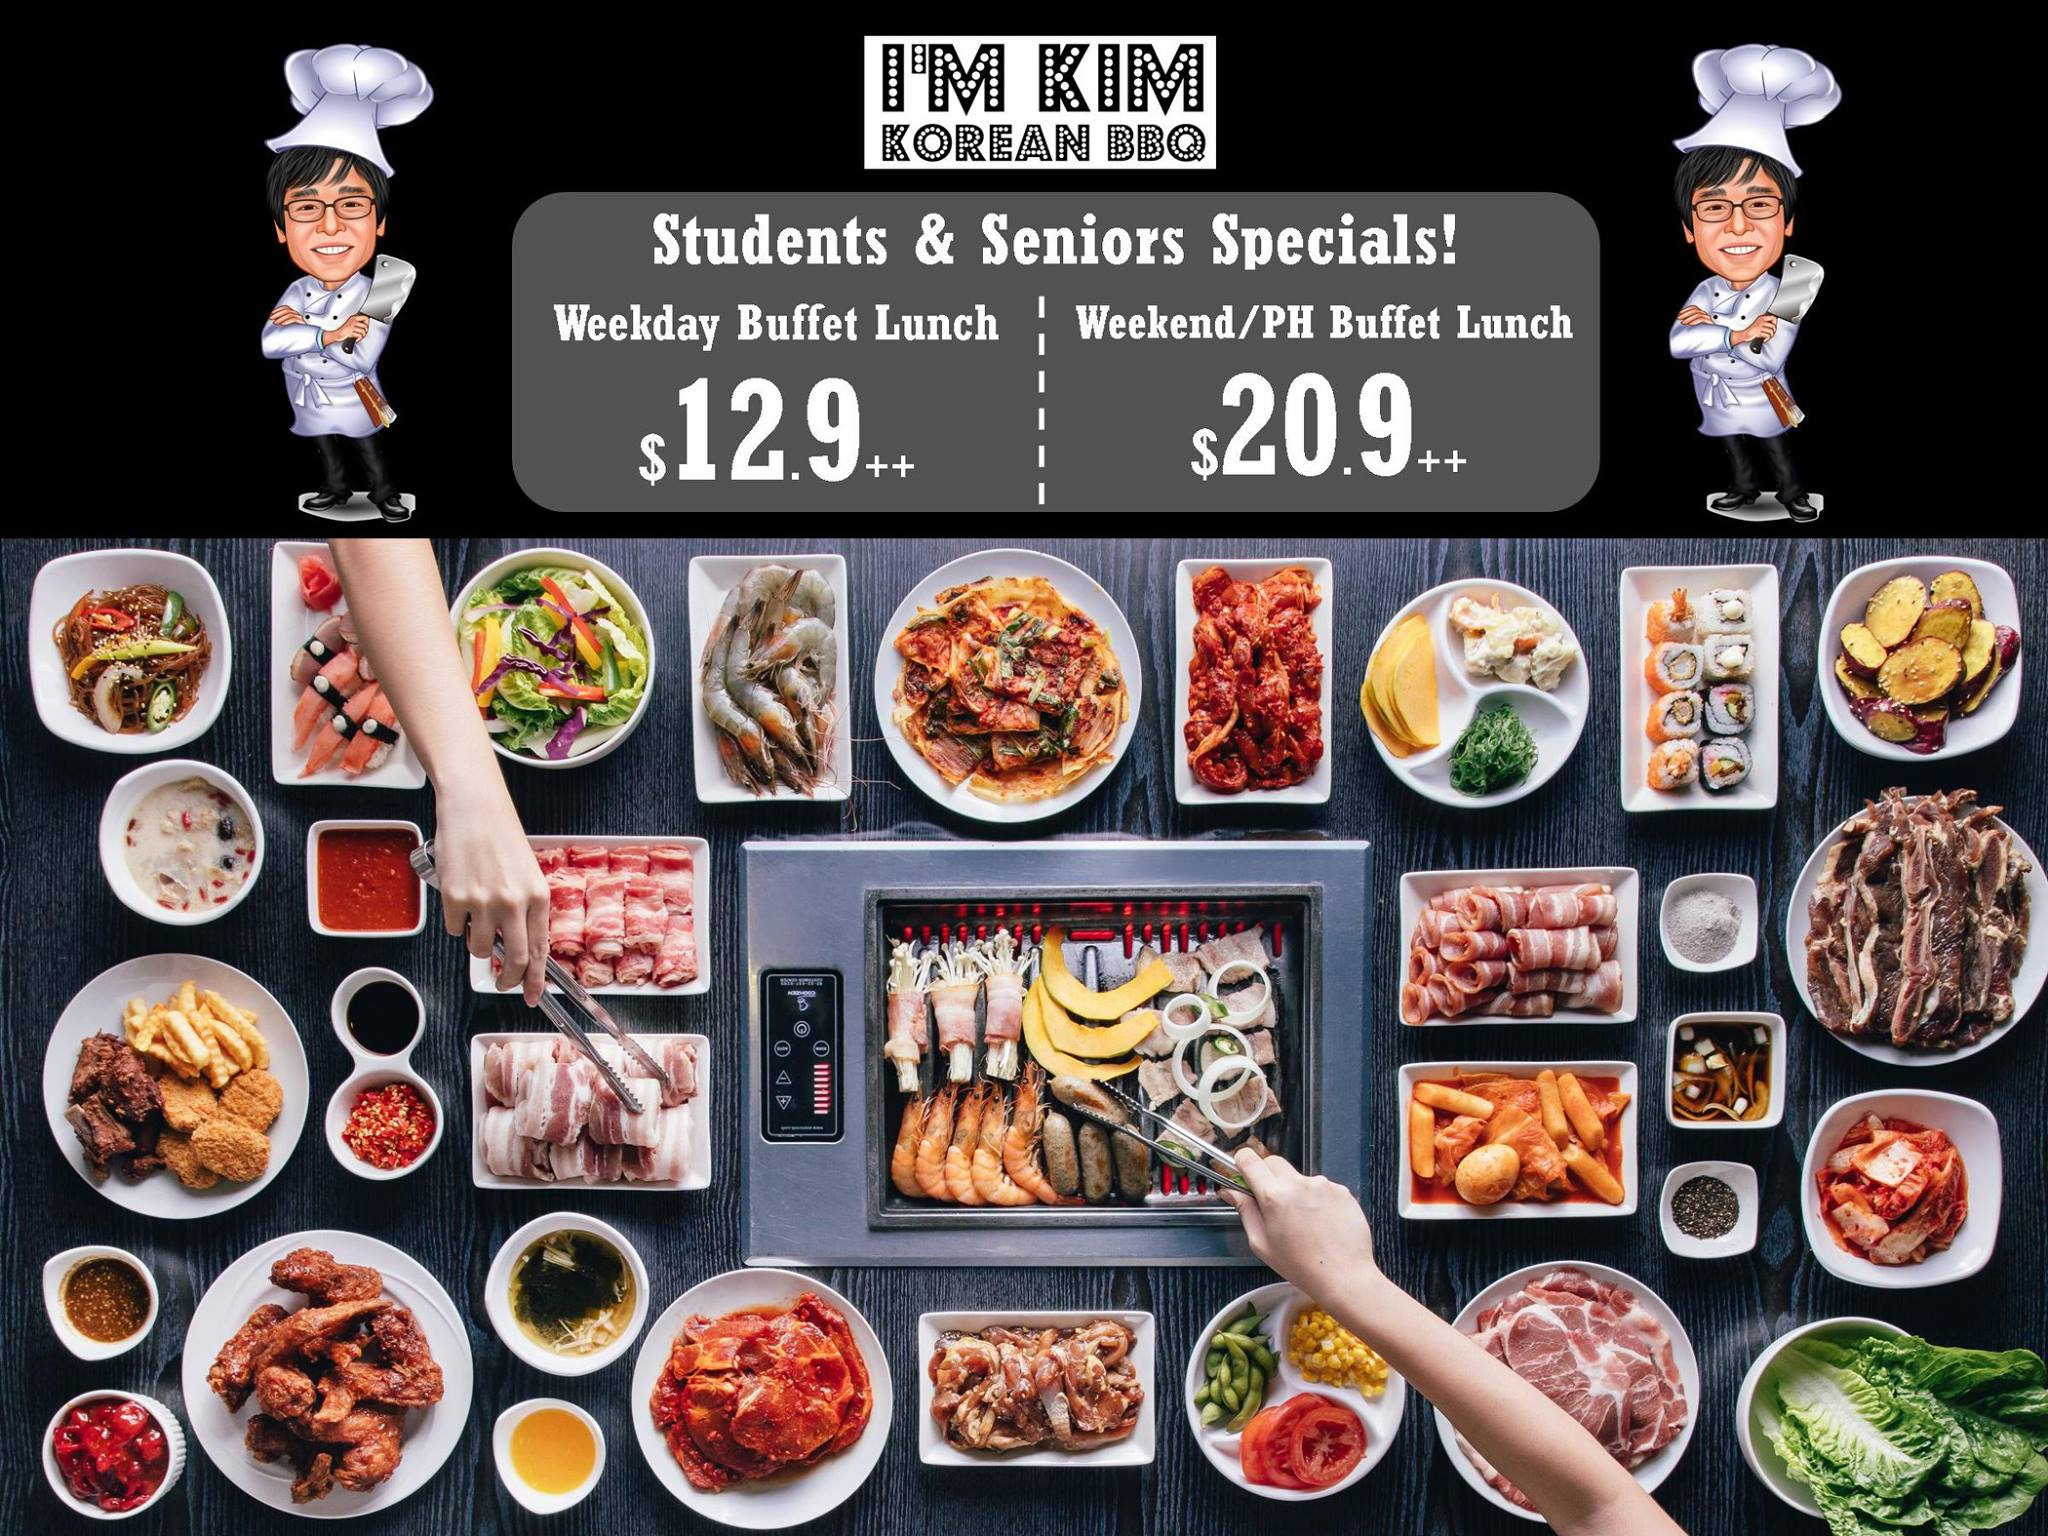 I'm KIM Korean BBQ SG Students & Seniors Specials - Why Not Deals 2 & Promotions